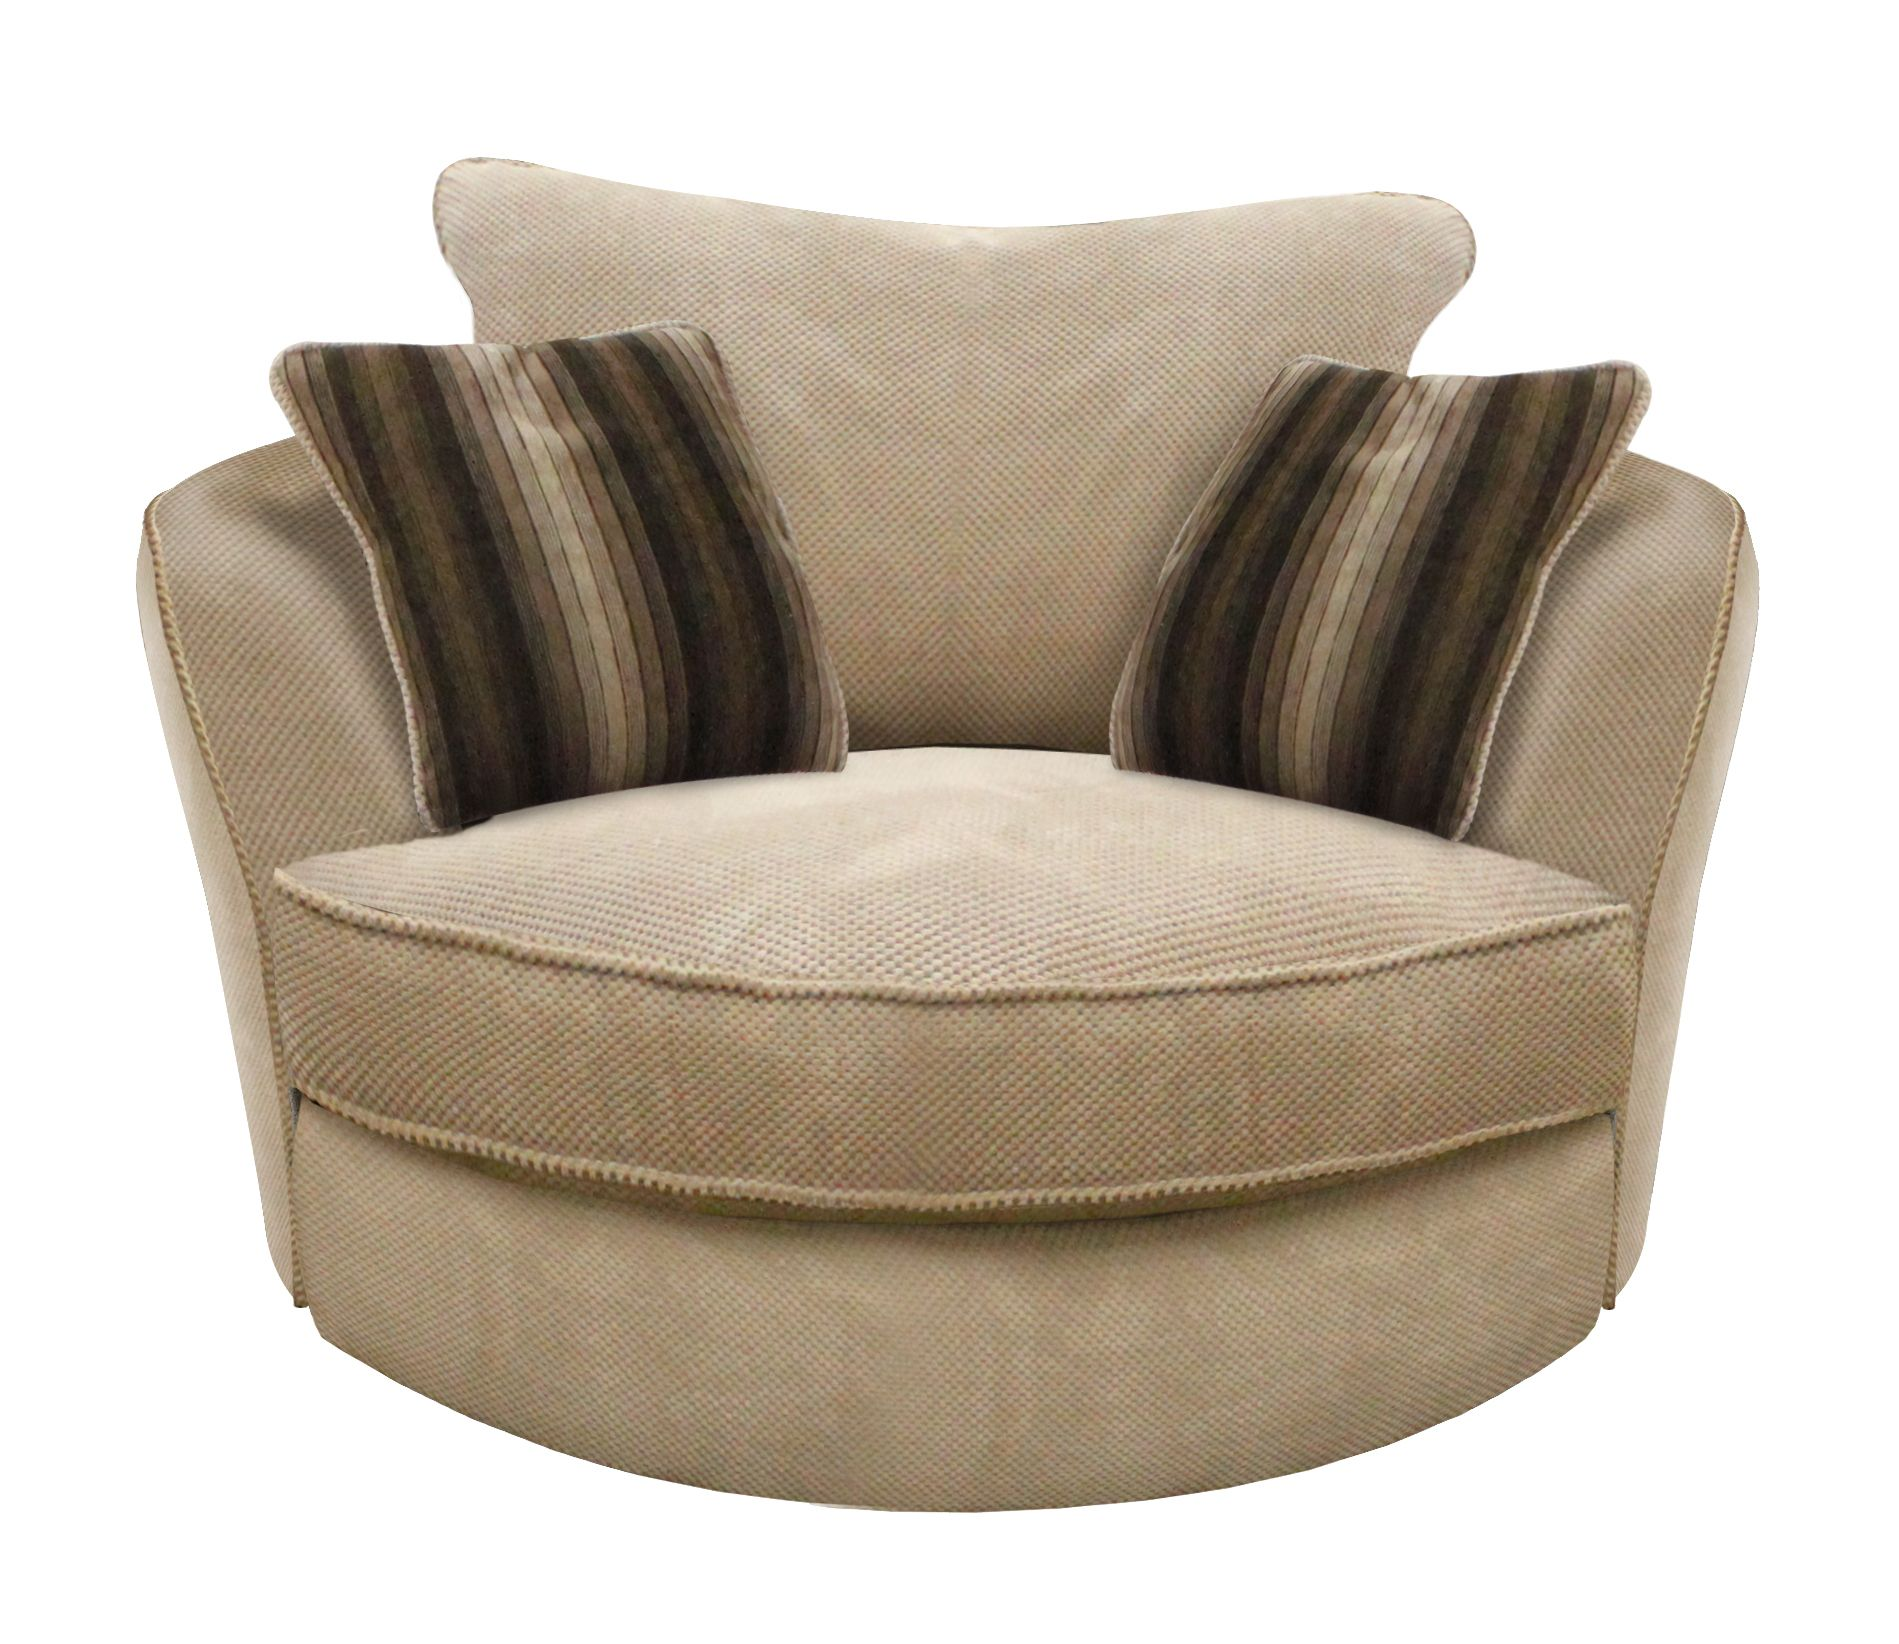 Linea Montana swivel snuggler chair